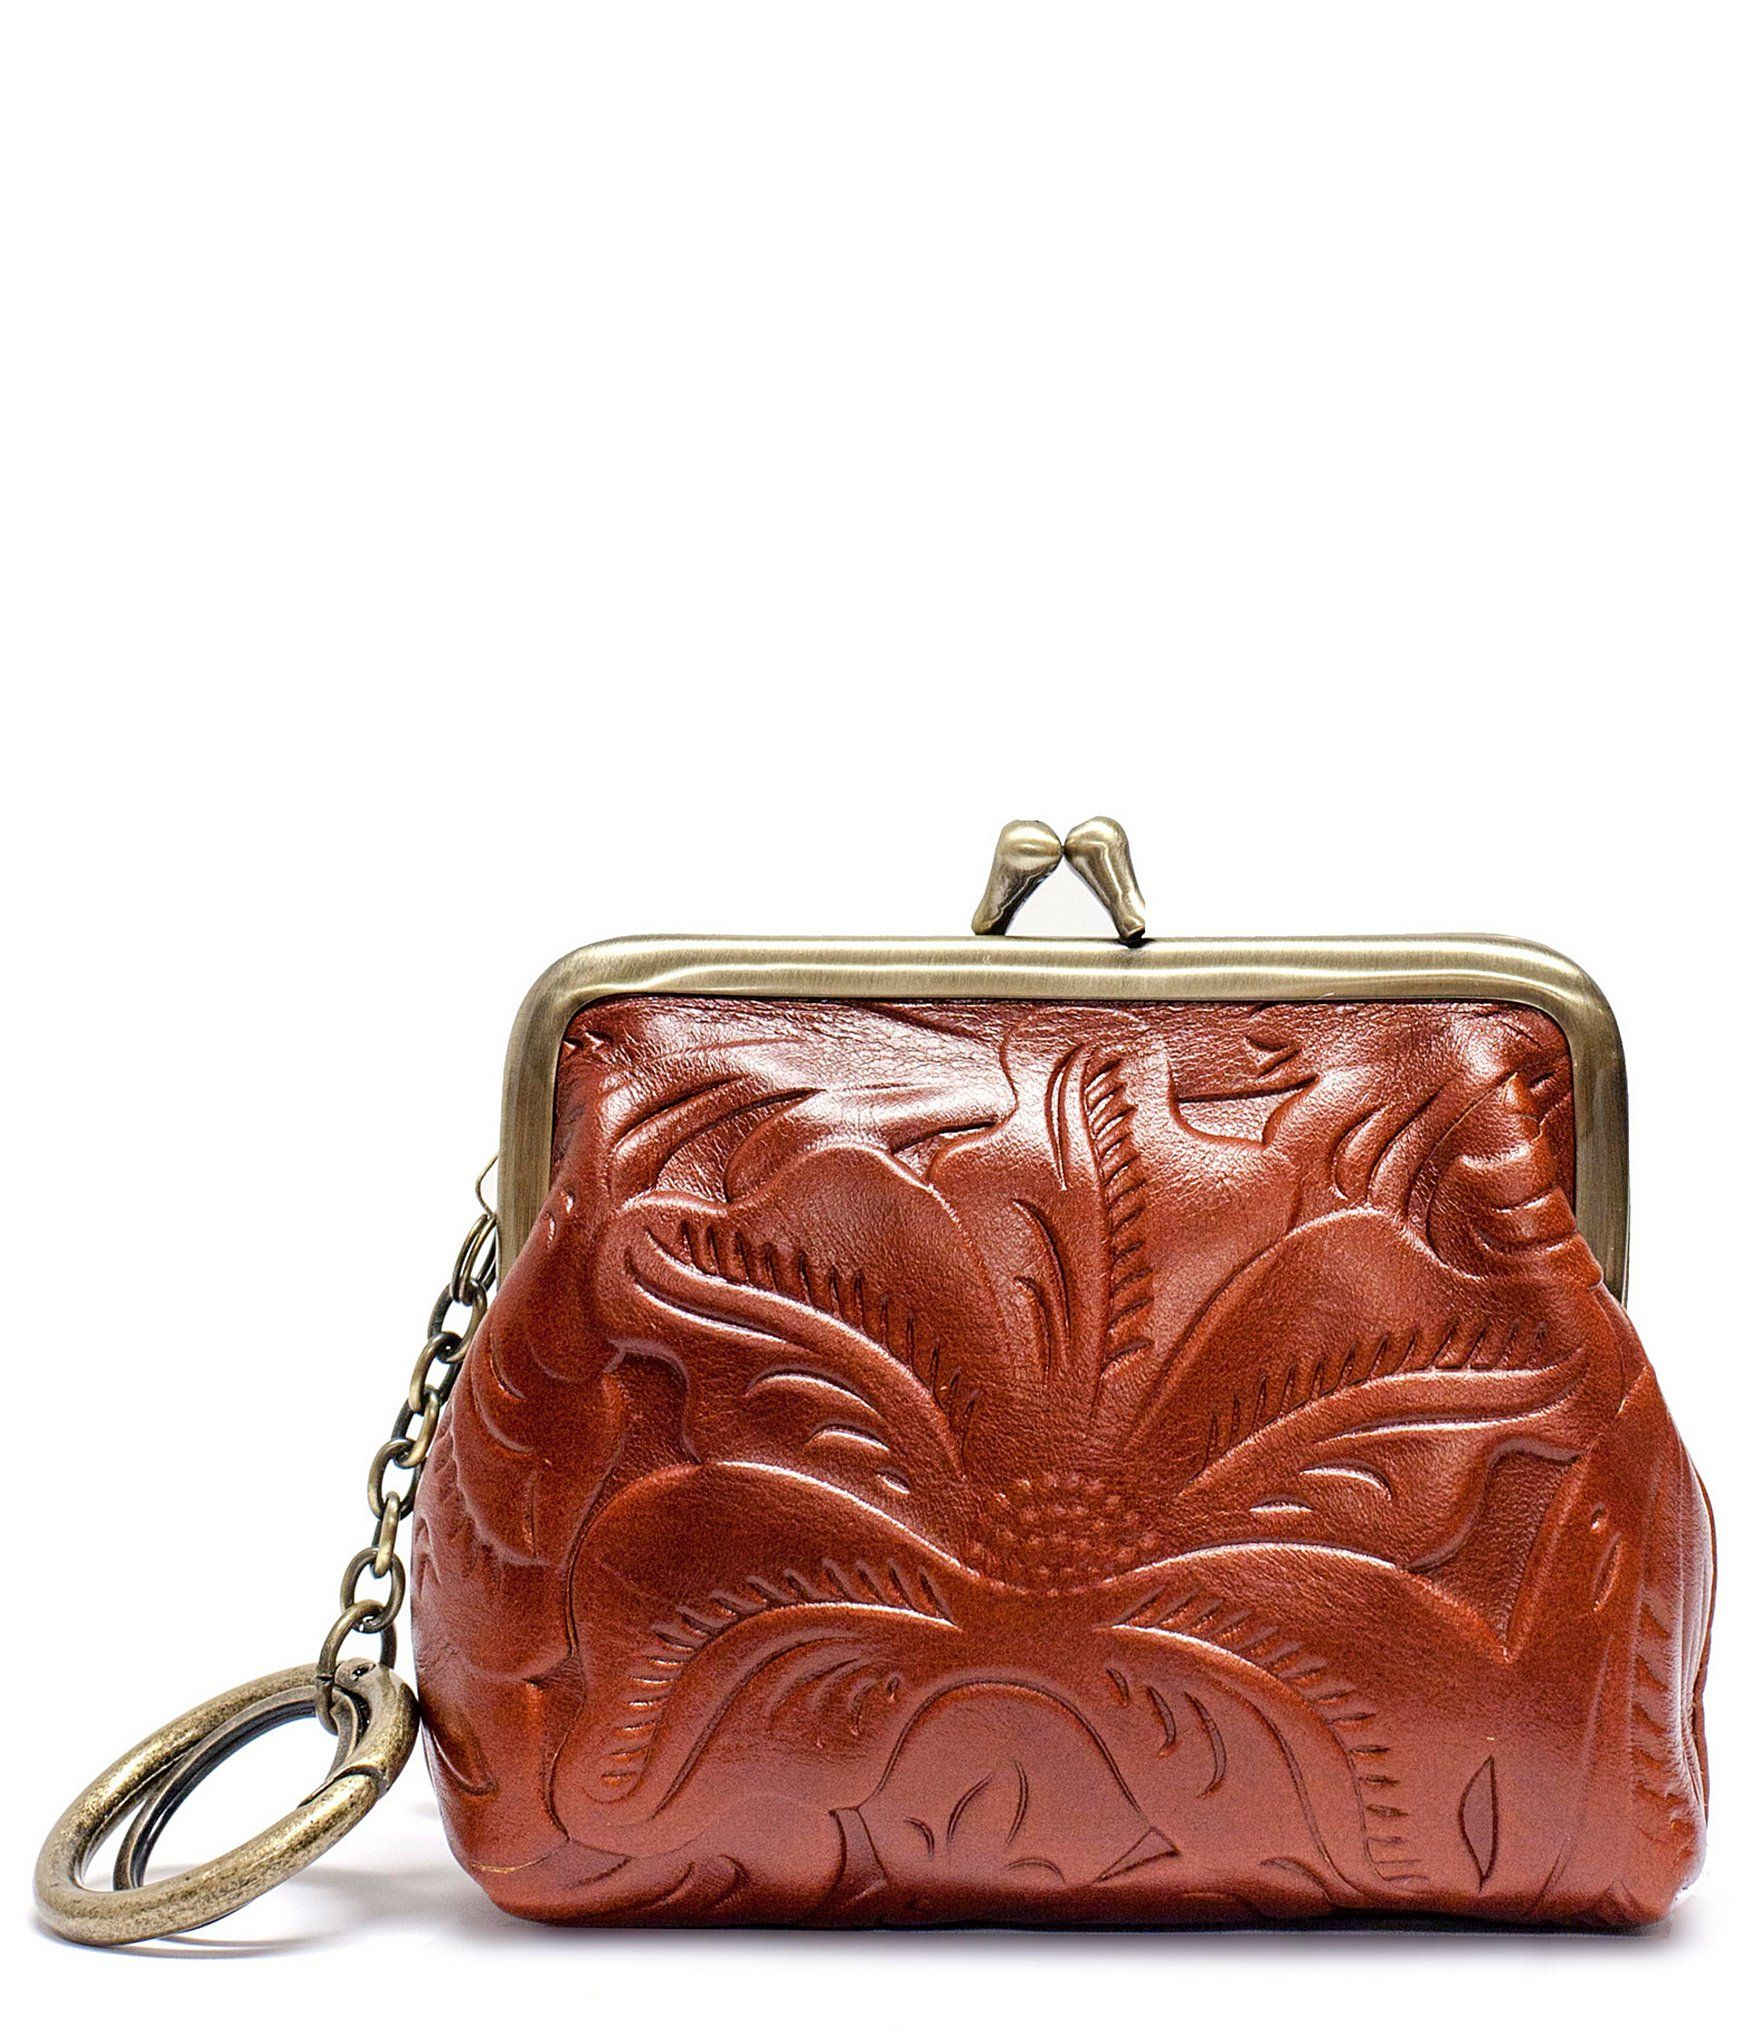 5c9c2567bdf5 Shop for Patricia Nash Borse Tooled Floral-Embossed Coin Purse at  Dillards.com. Visit Dillards.com to find clothing, accessories, shoes,  cosmetics & more.